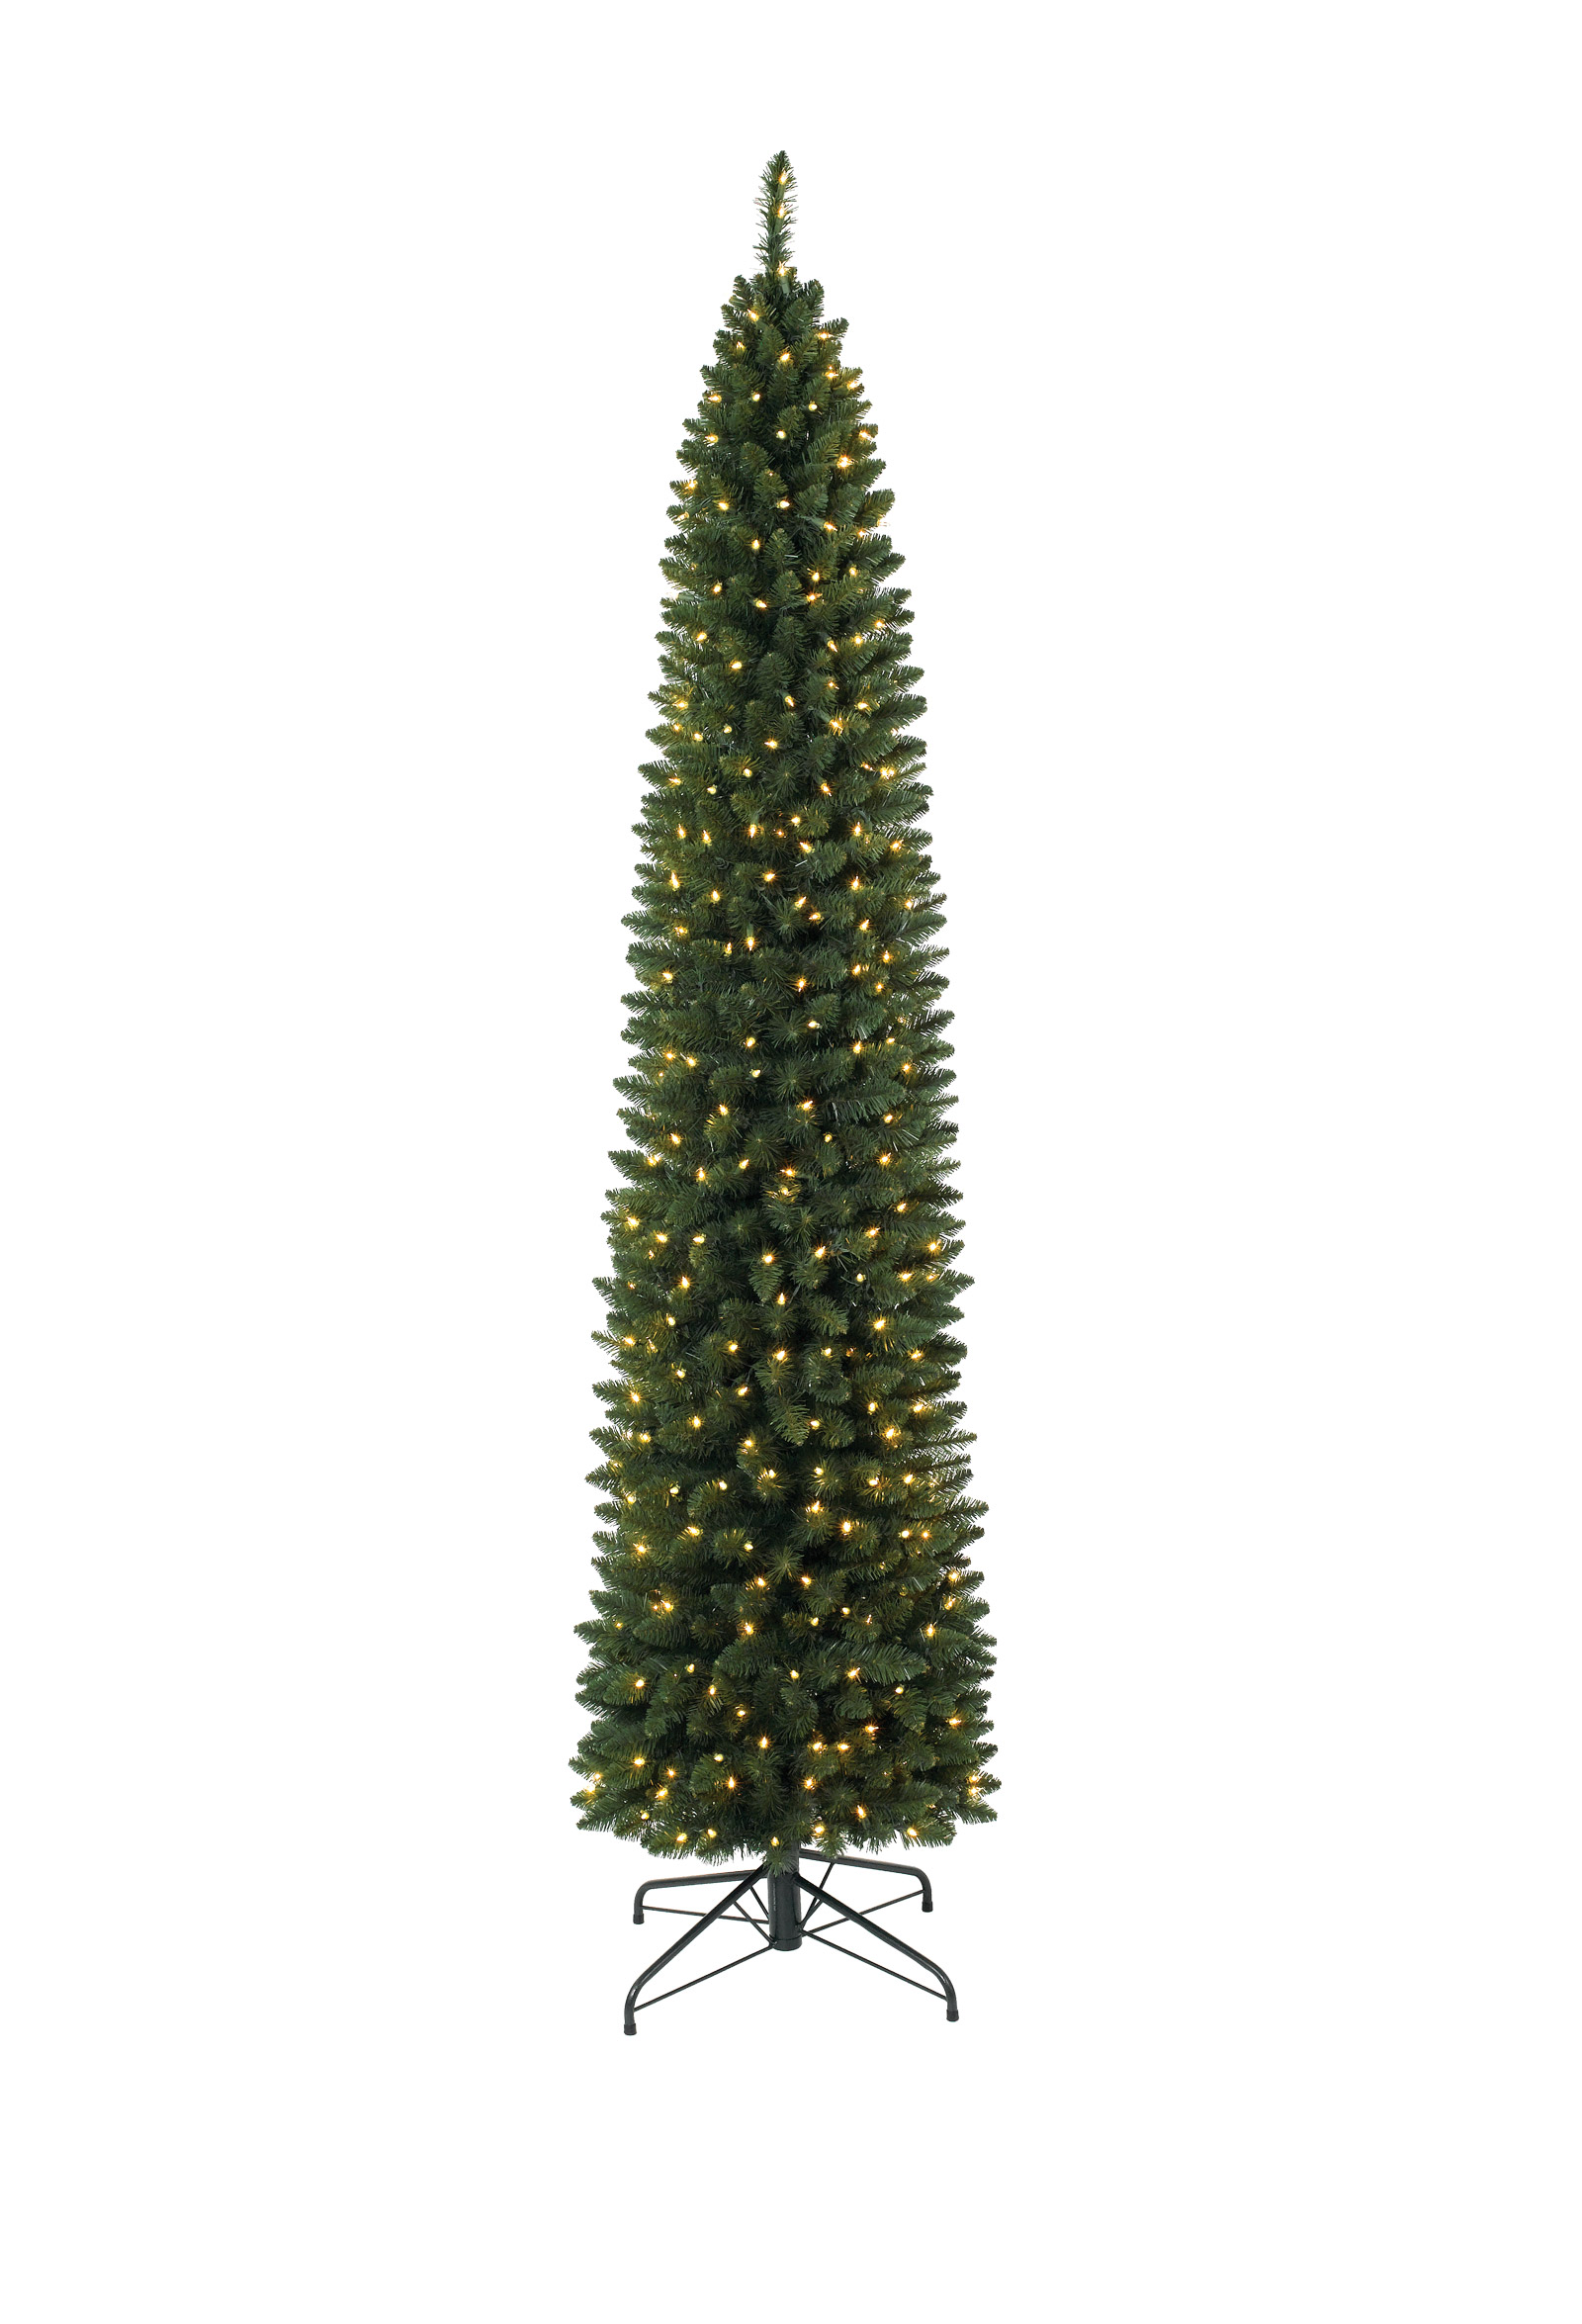 9 foot pre lit ticonderoga artificial christmas tree - 2 Foot Christmas Tree